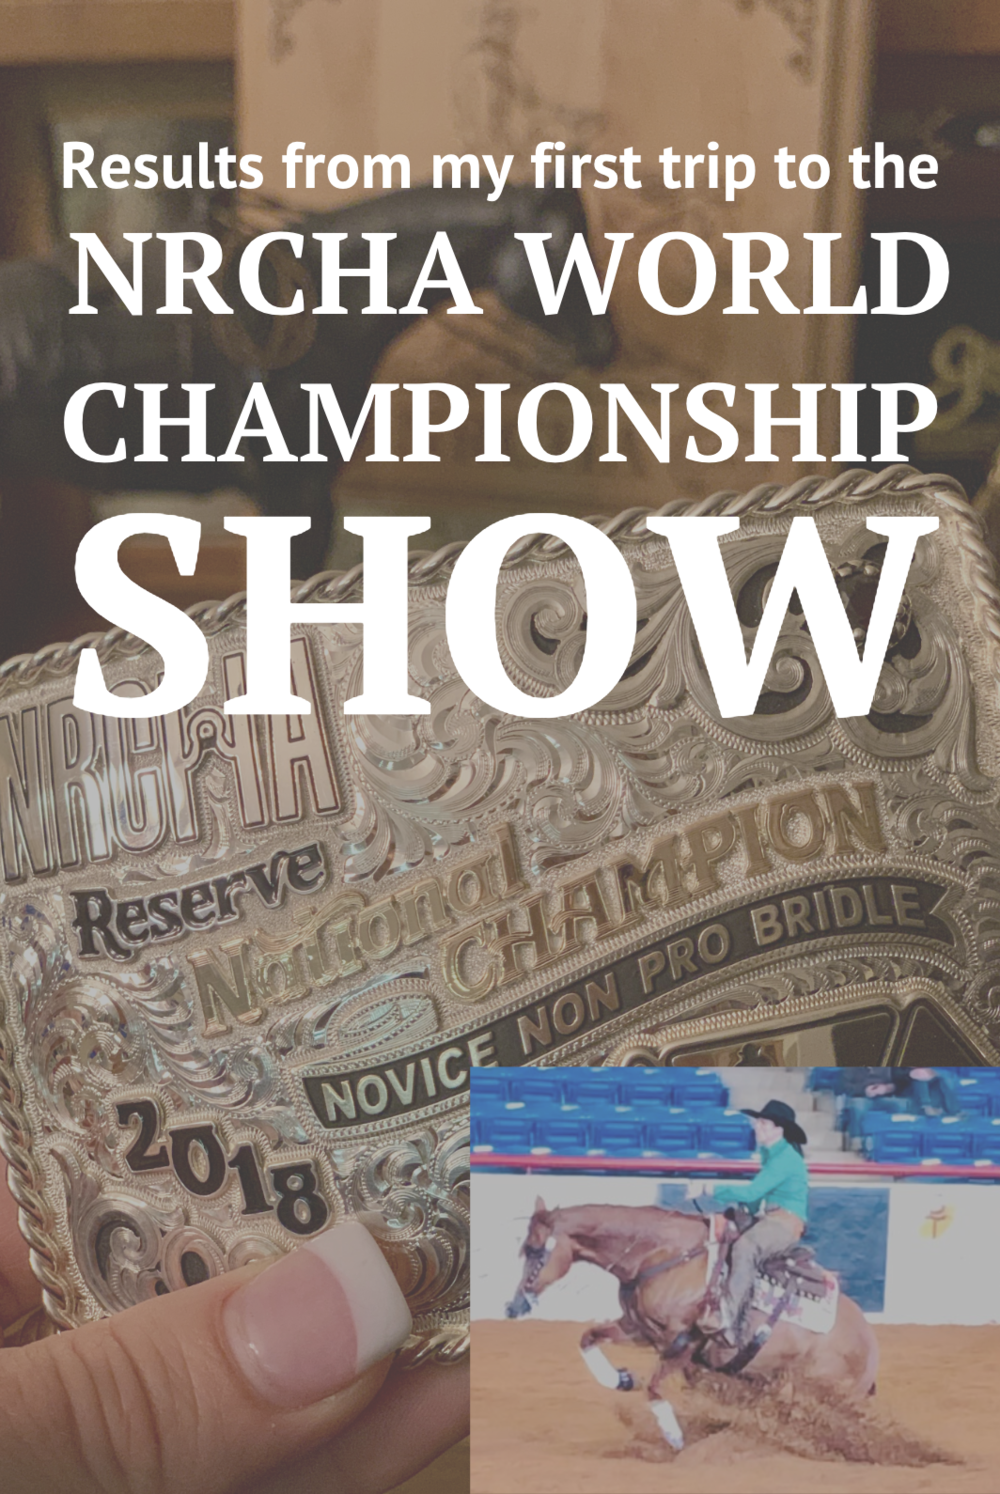 NRCHA_WORLD_SHOW_RESULTS_ANDREA_OTLEY.png